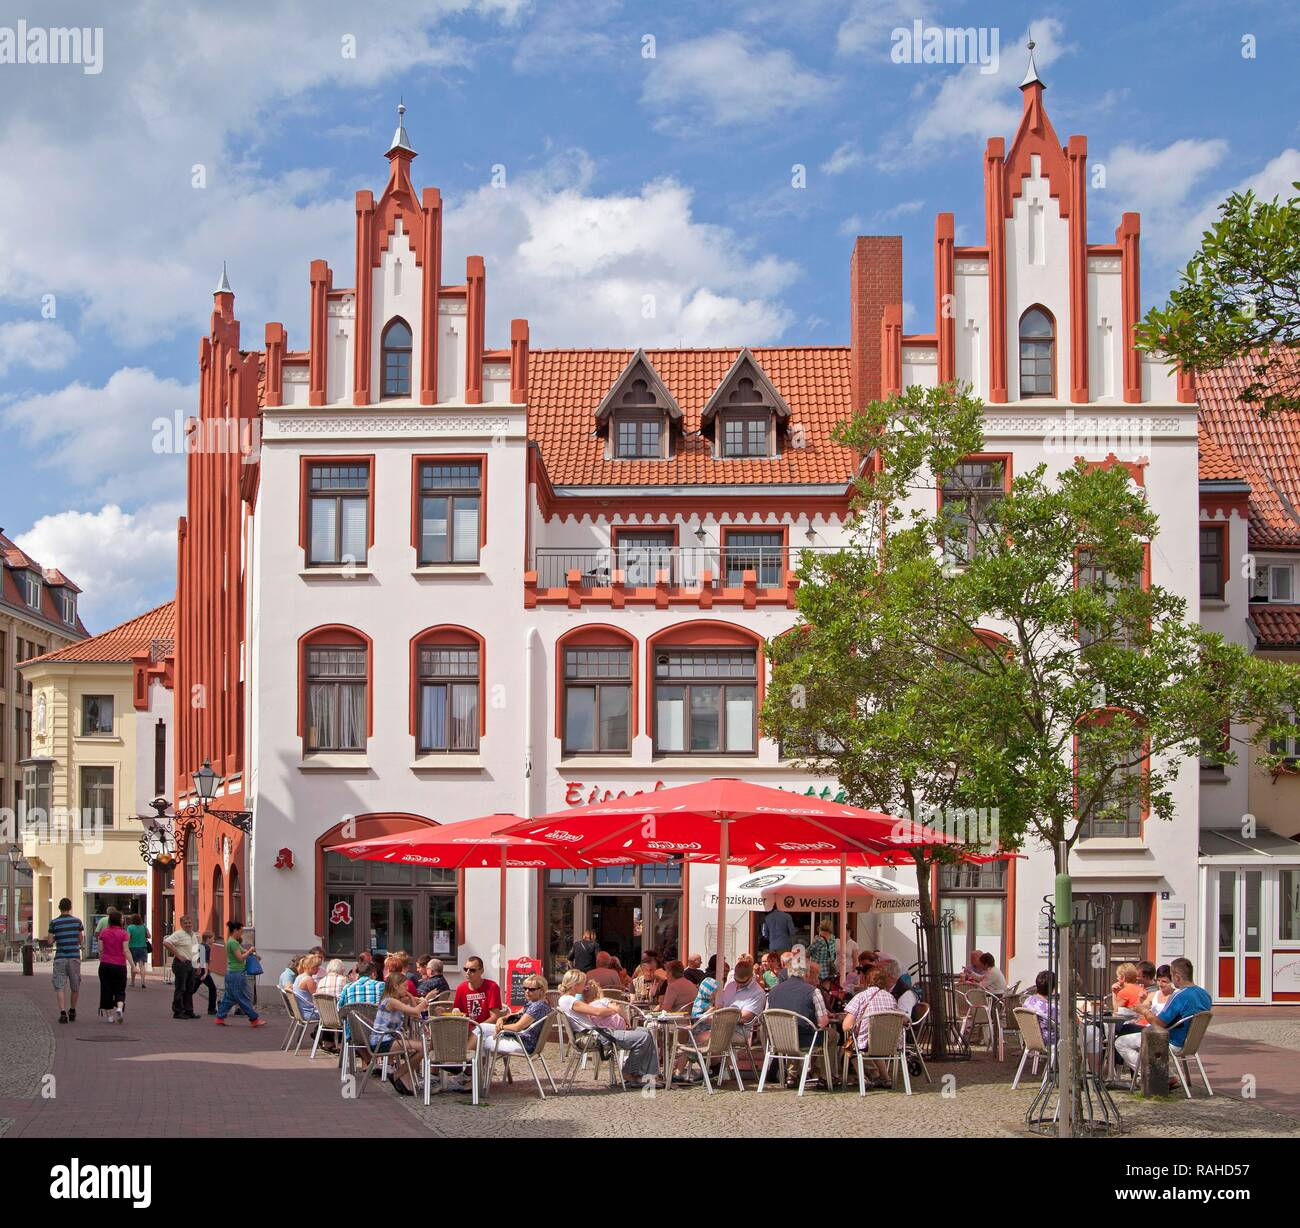 Restaurant on the market square or market place, Wismar, Mecklenburg-Western Pomerania - Stock Image